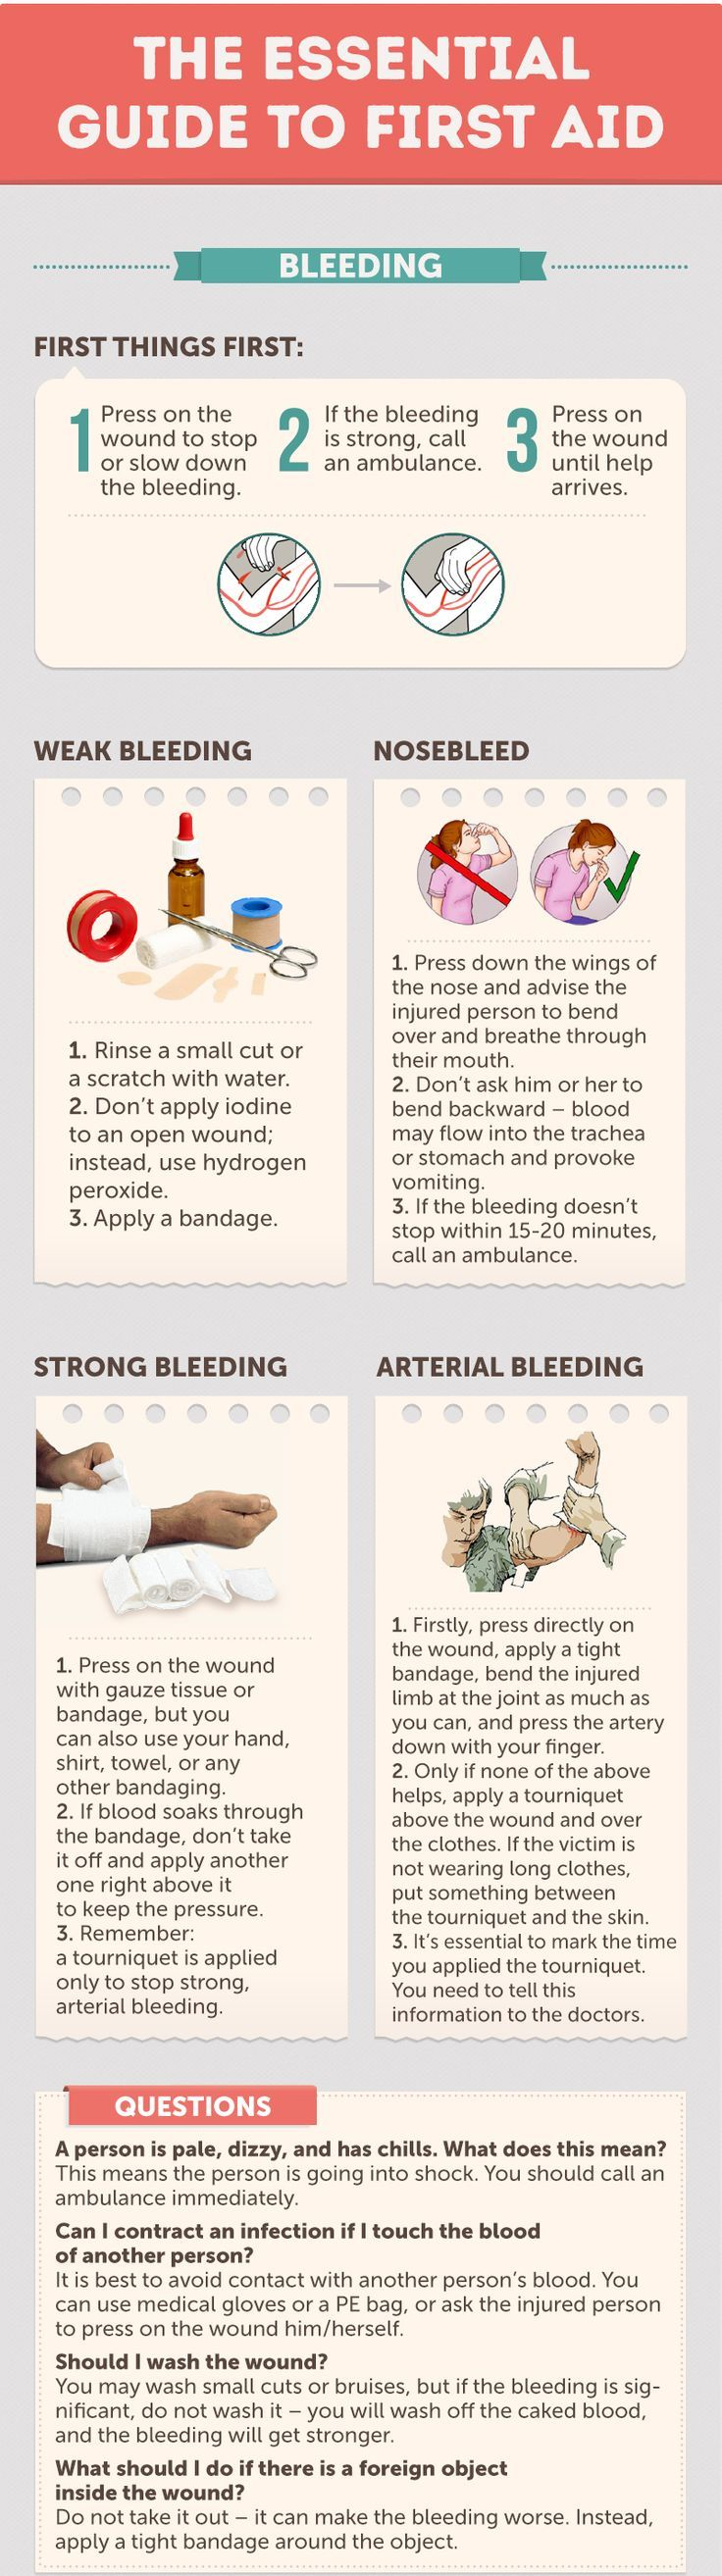 First Aid Basics for Bleeding - 43 Usefull Hiking Tips and Tricks